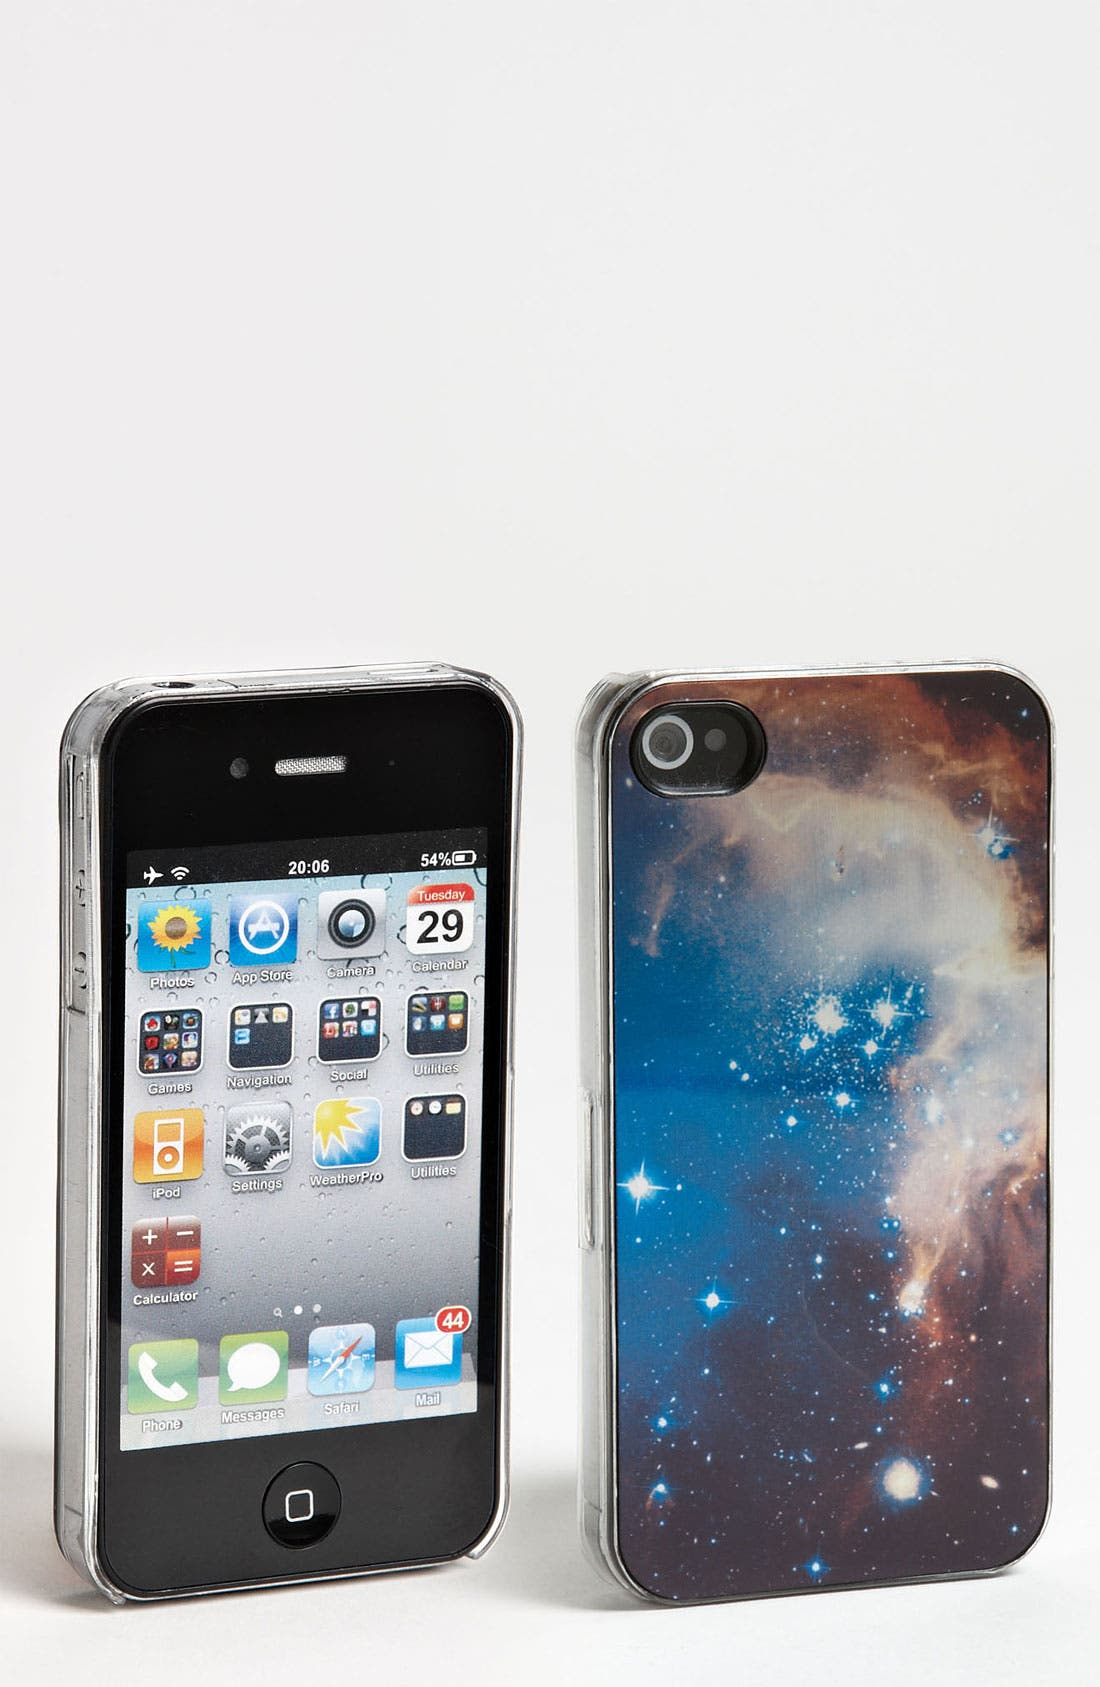 Main Image - ZERO GRAVITY 'Space' iPhone 4 & 4S Case